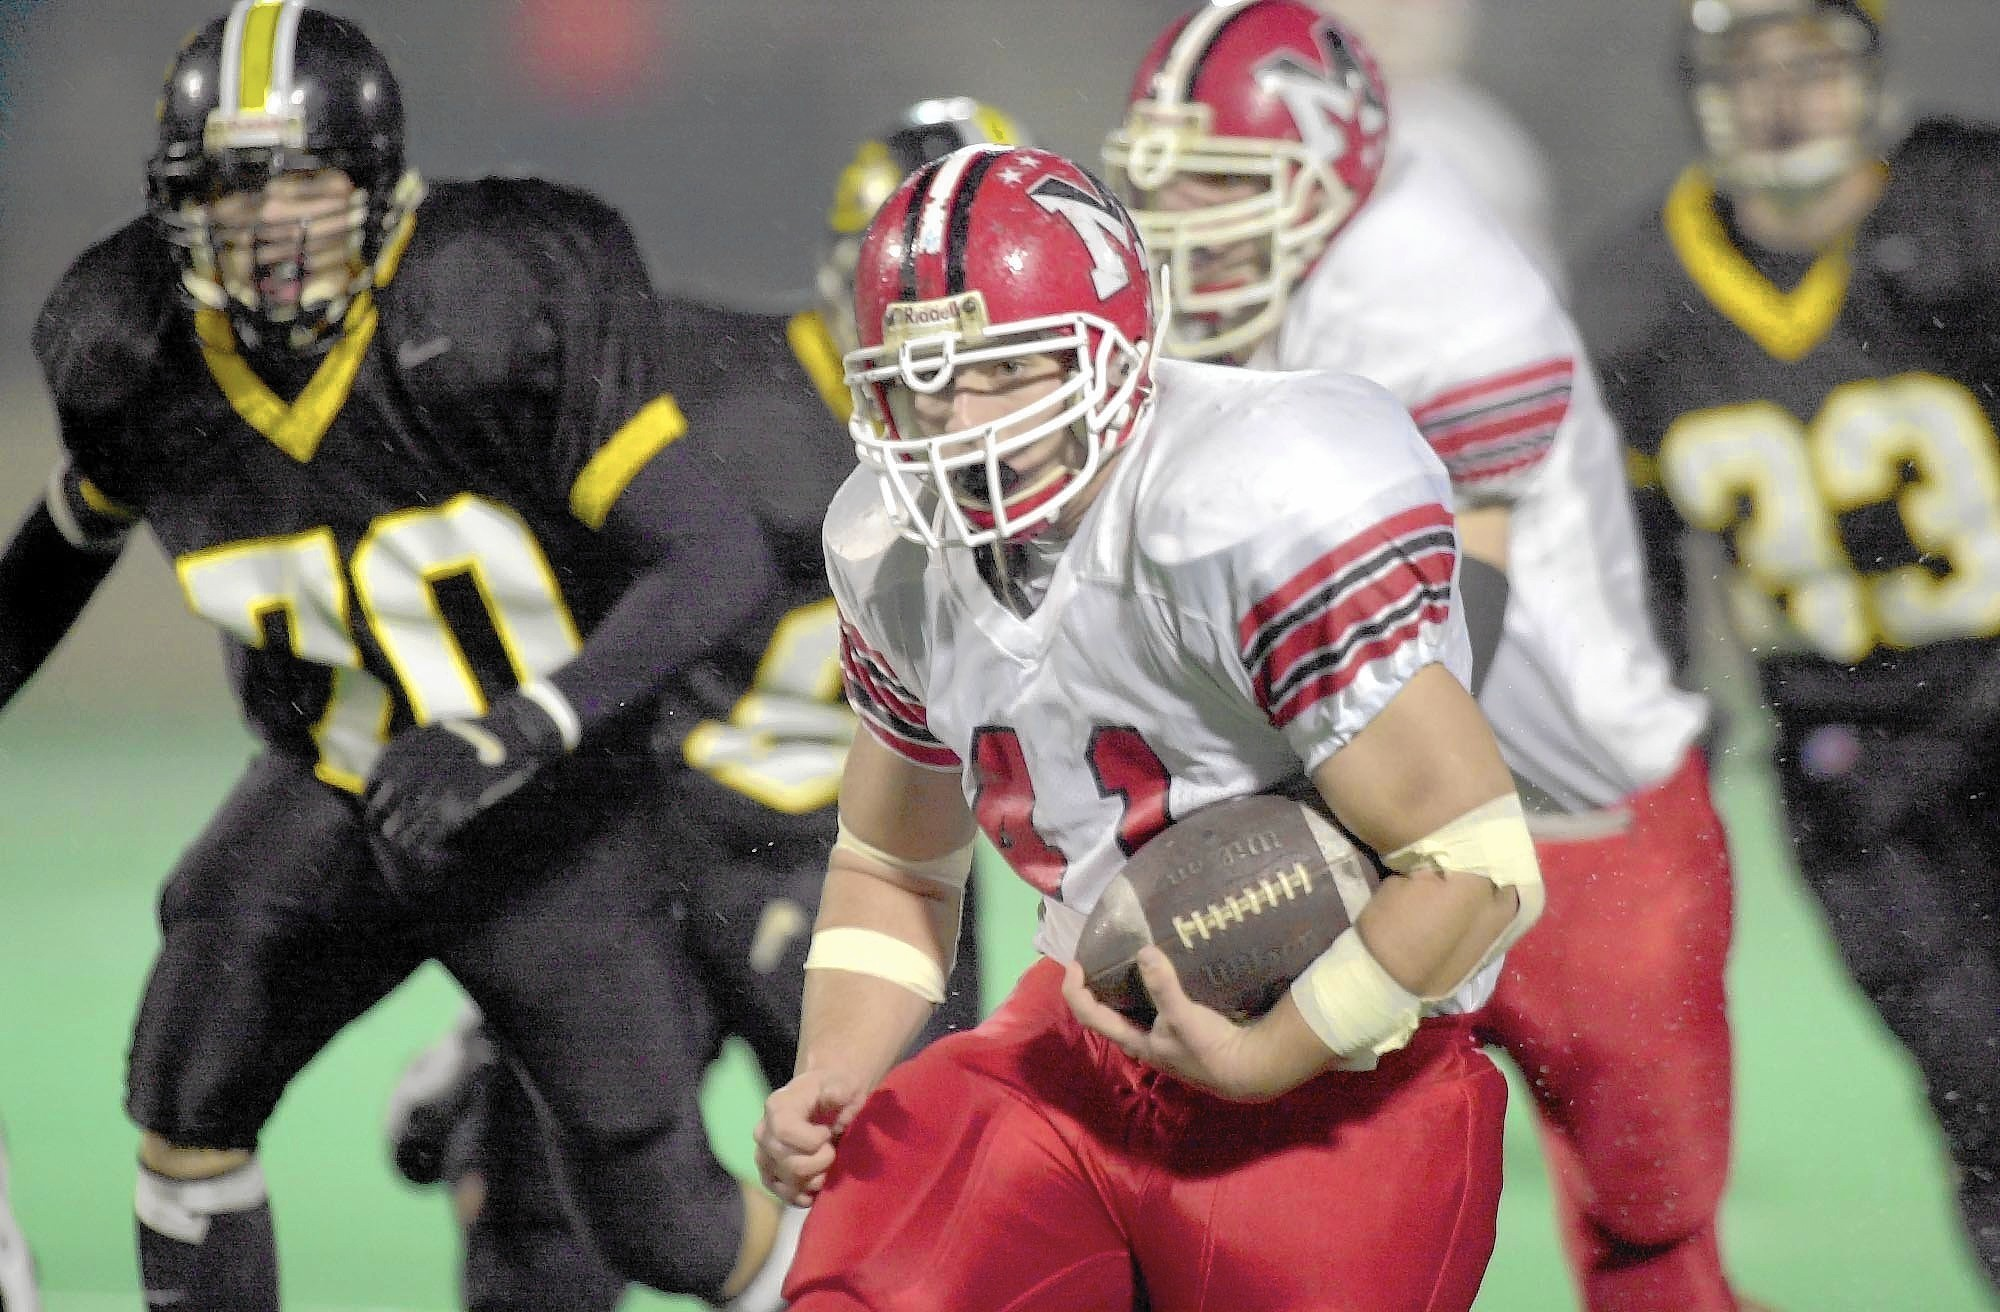 Maine South football state tournament notes - Northbrook Star